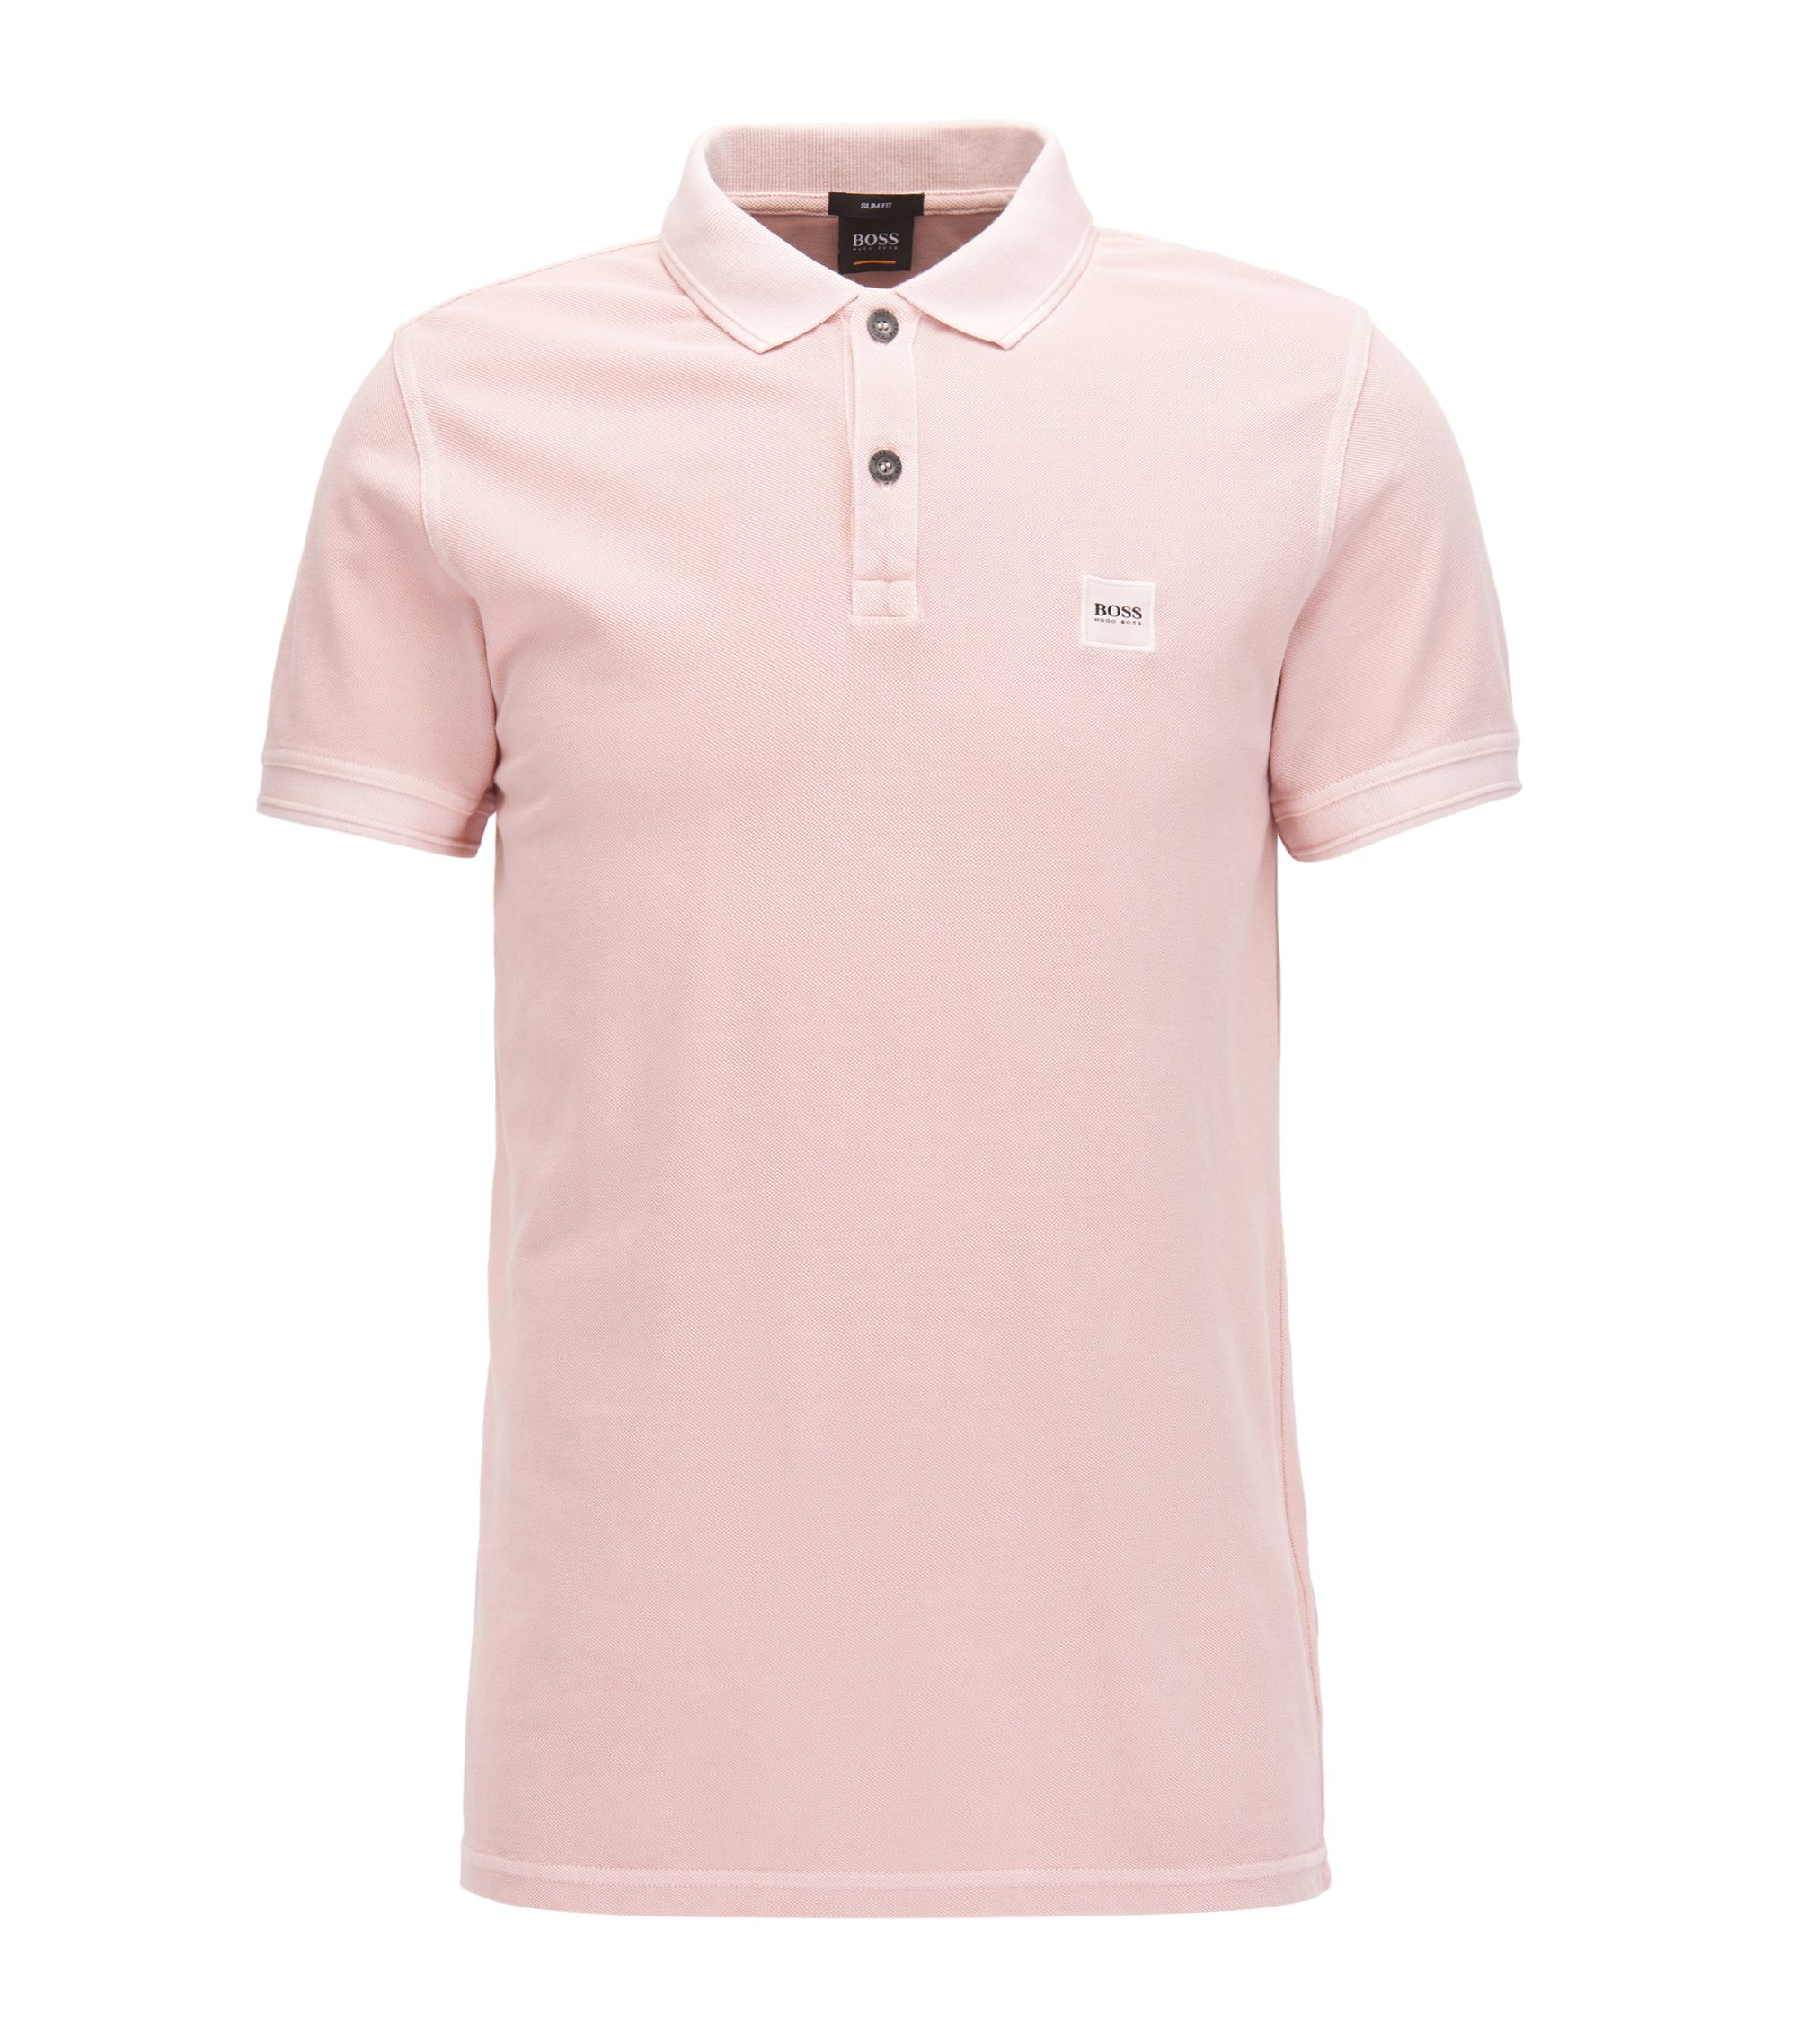 Slim-fit polo shirt in washed cotton piqué, light pink